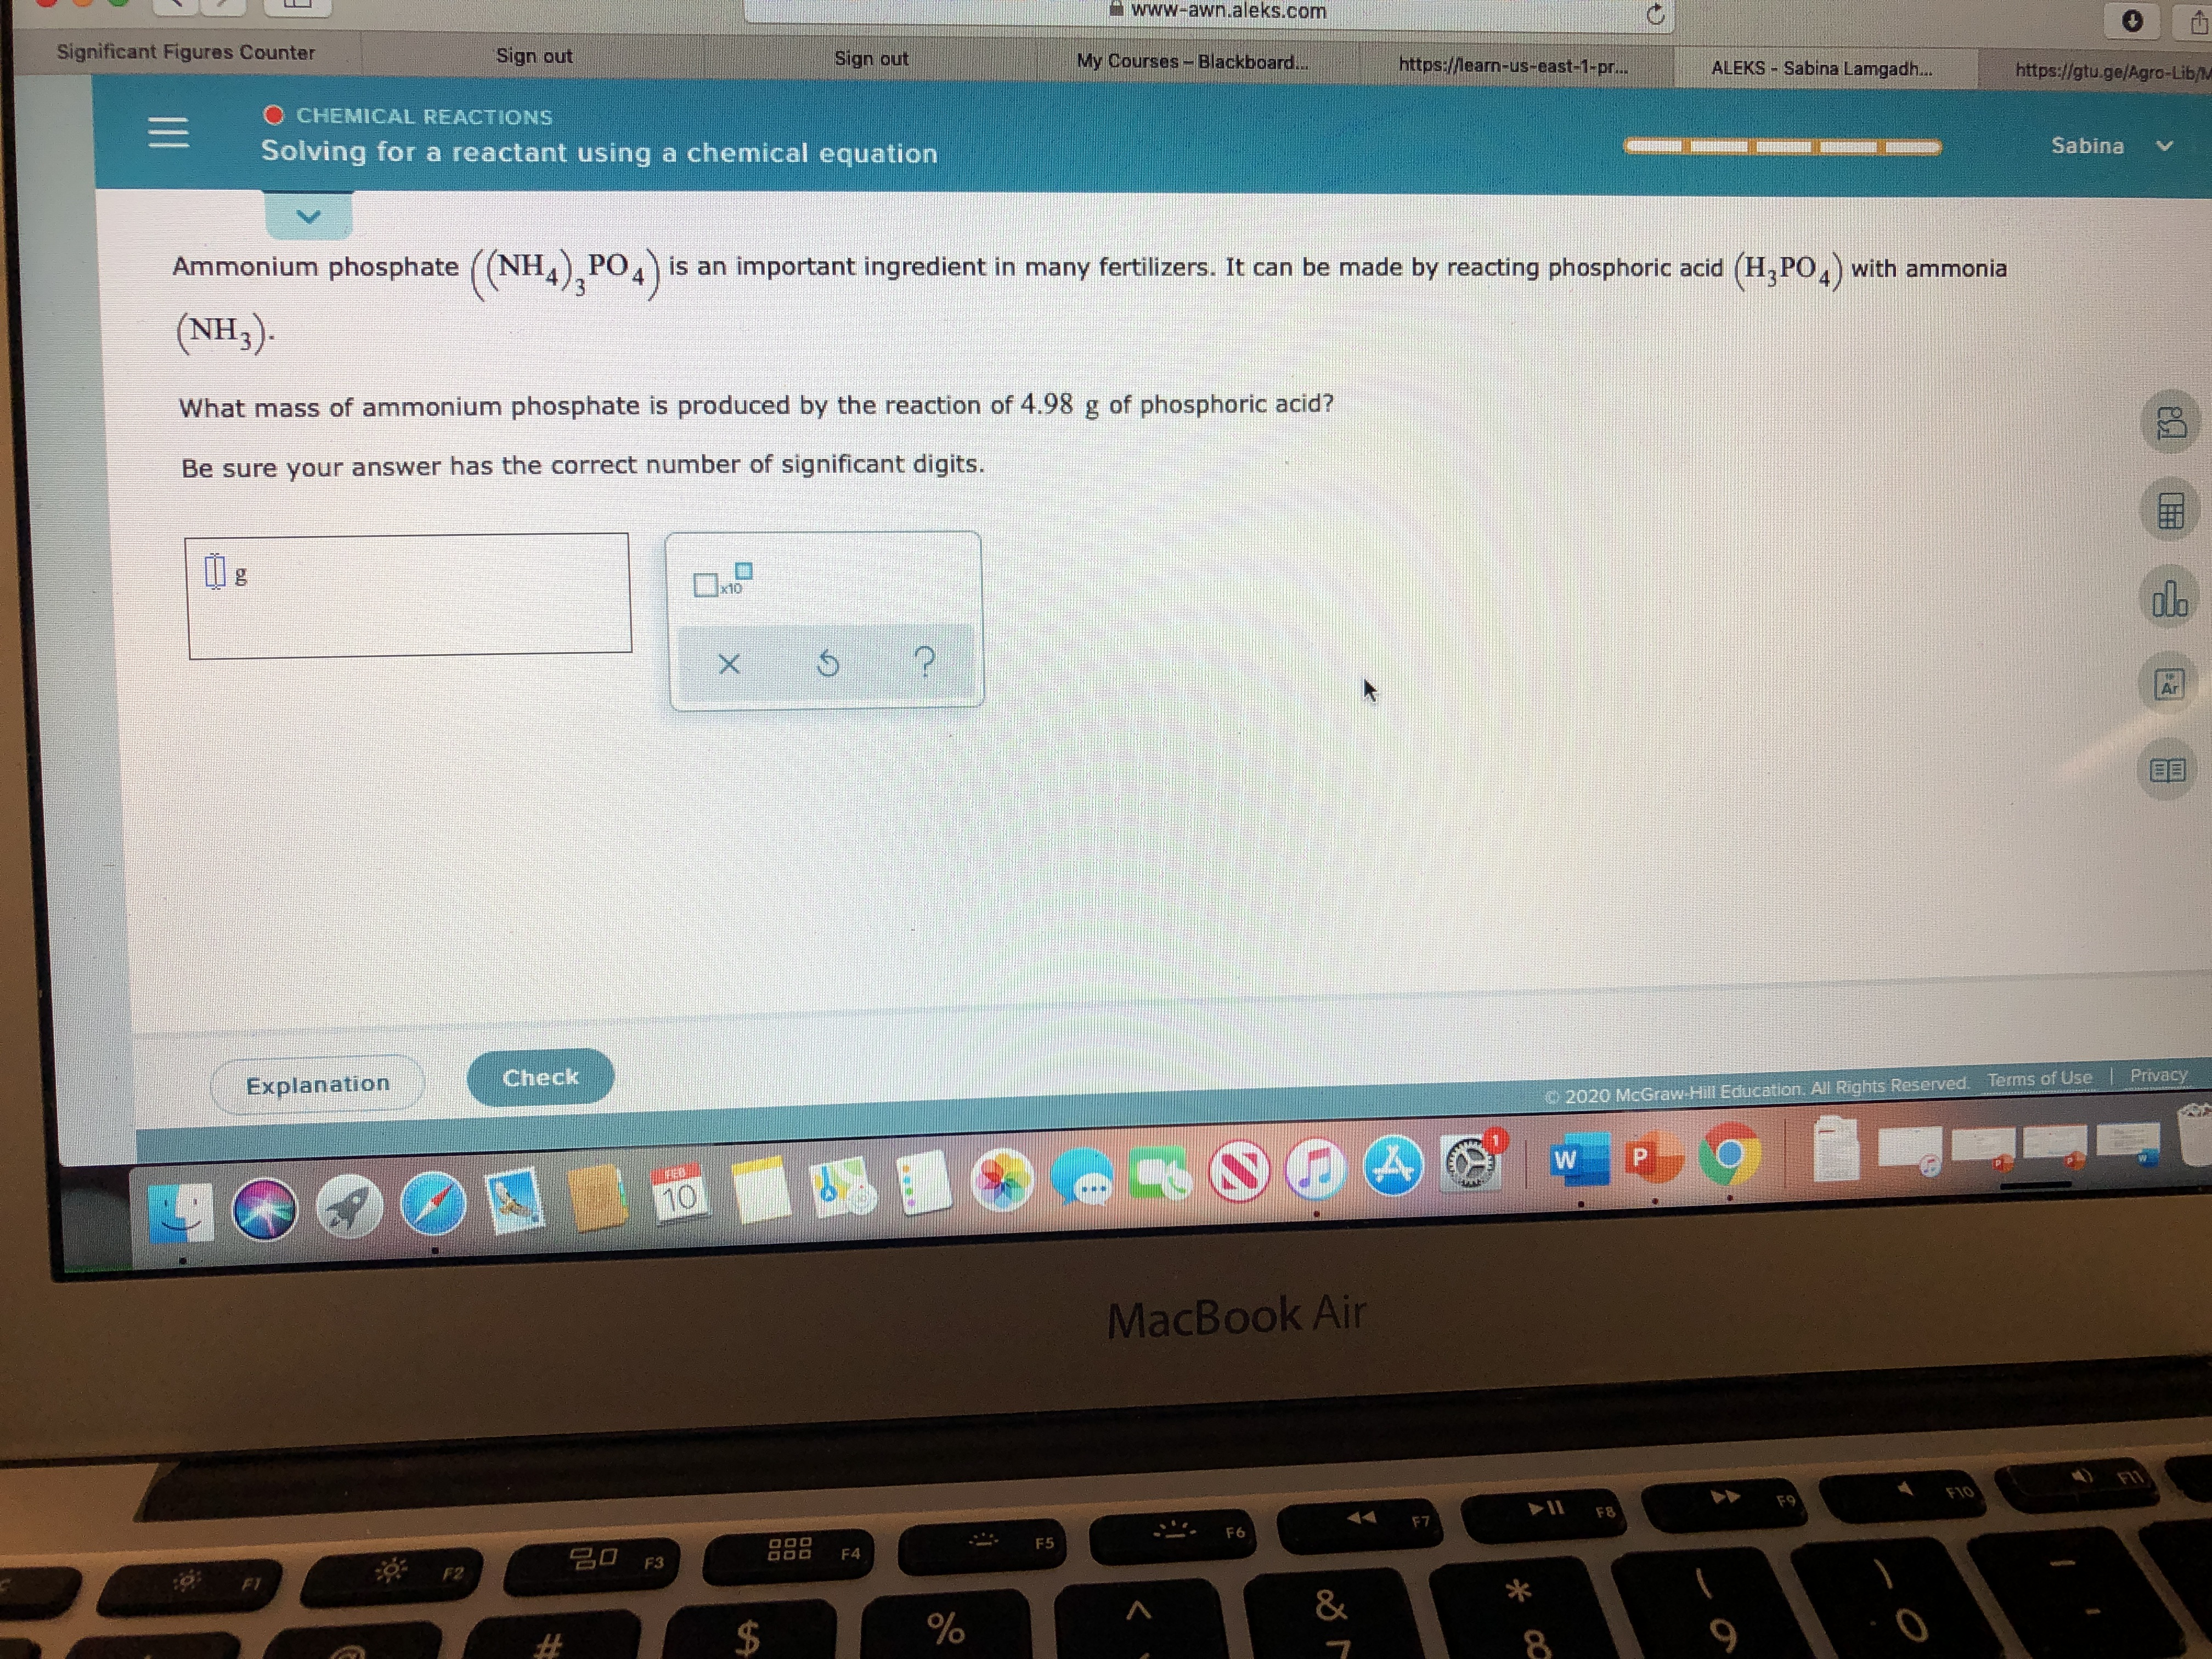 www-awn.aleks.com Significant Figures Counter Sign out Sign out My Courses-Blackboard... https://learn-us-east-1-pr... ALEKS Sabina Lamgadh... https://gtu.ge/Agro-Lib/M O CHEMICAL REACTIONS Sabina Solving for a reactant using a chemical equation Ammonium phosphate ((NH) PO,) is an important ingredient in many fertilizers. It can be made by reacting phosphoric acid (H,PO,) with ammonia (NH3). What mass of ammonium phosphate is produced by the reaction of 4.98 g of phosphoric acid? Be sure your answer has the correct number of significant digits. do x10 Ar Check Privacy Terms of Use Explanation © 2020 McGraw Hill Education, All Rights Reserved. P. MacBook Air F10 F9 F8 F7 F6 F5 20 F3 F4 F1 & * cQ %24 II